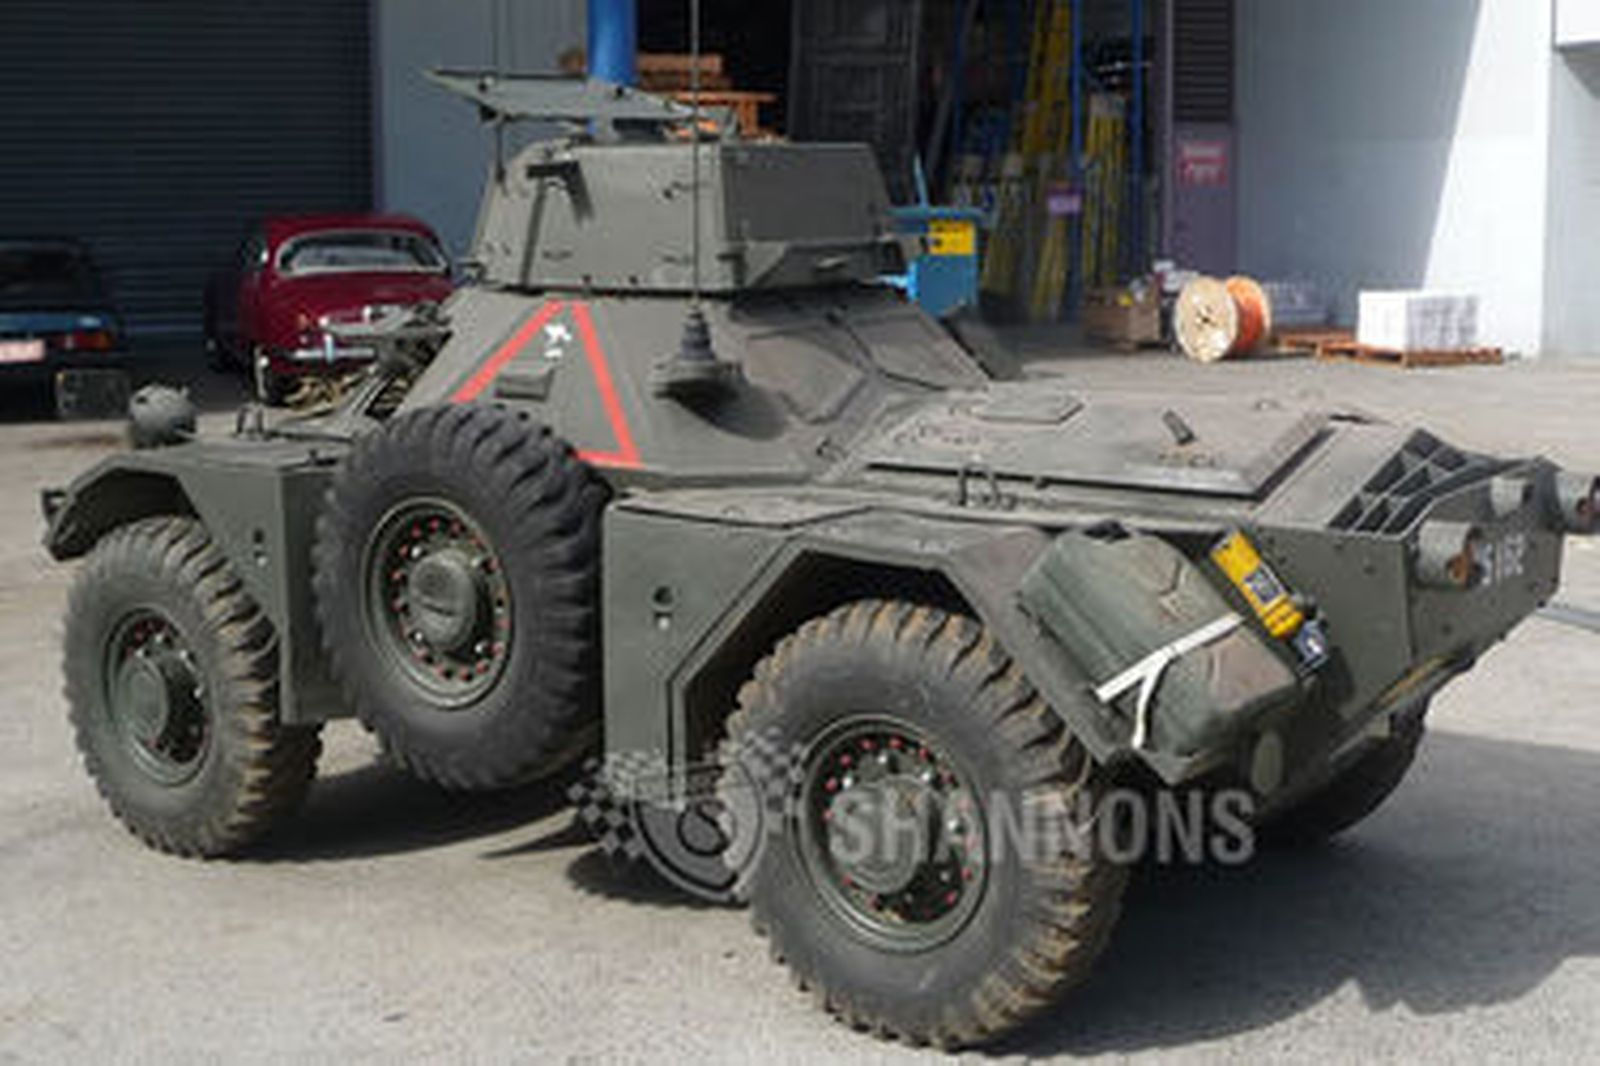 Armored Vehicles For Sale >> Sold: Ferret Scout Mk 2 Military Vehicle Auctions - Lot 9 - Shannons